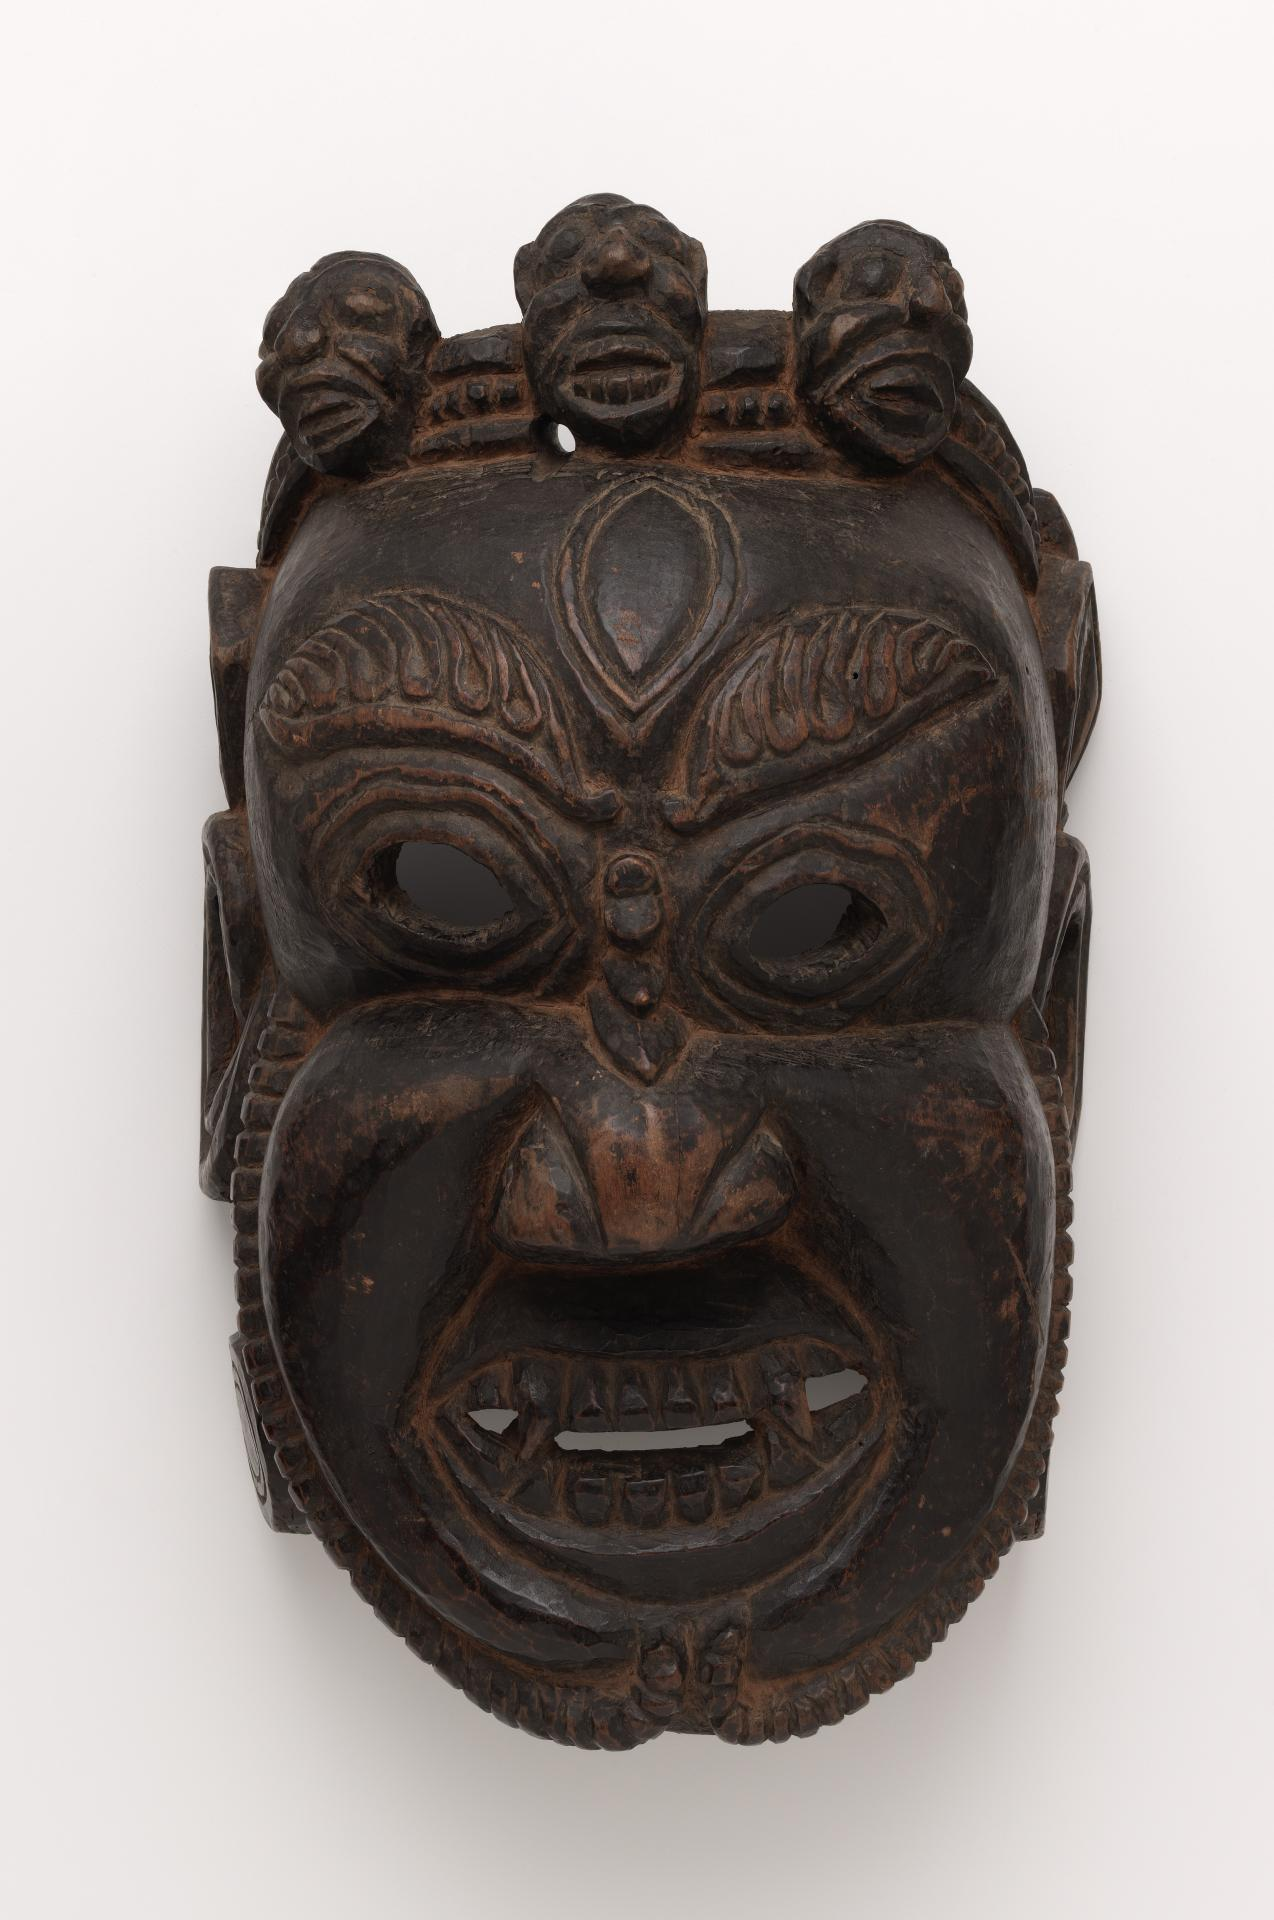 Mahakala, dance mask